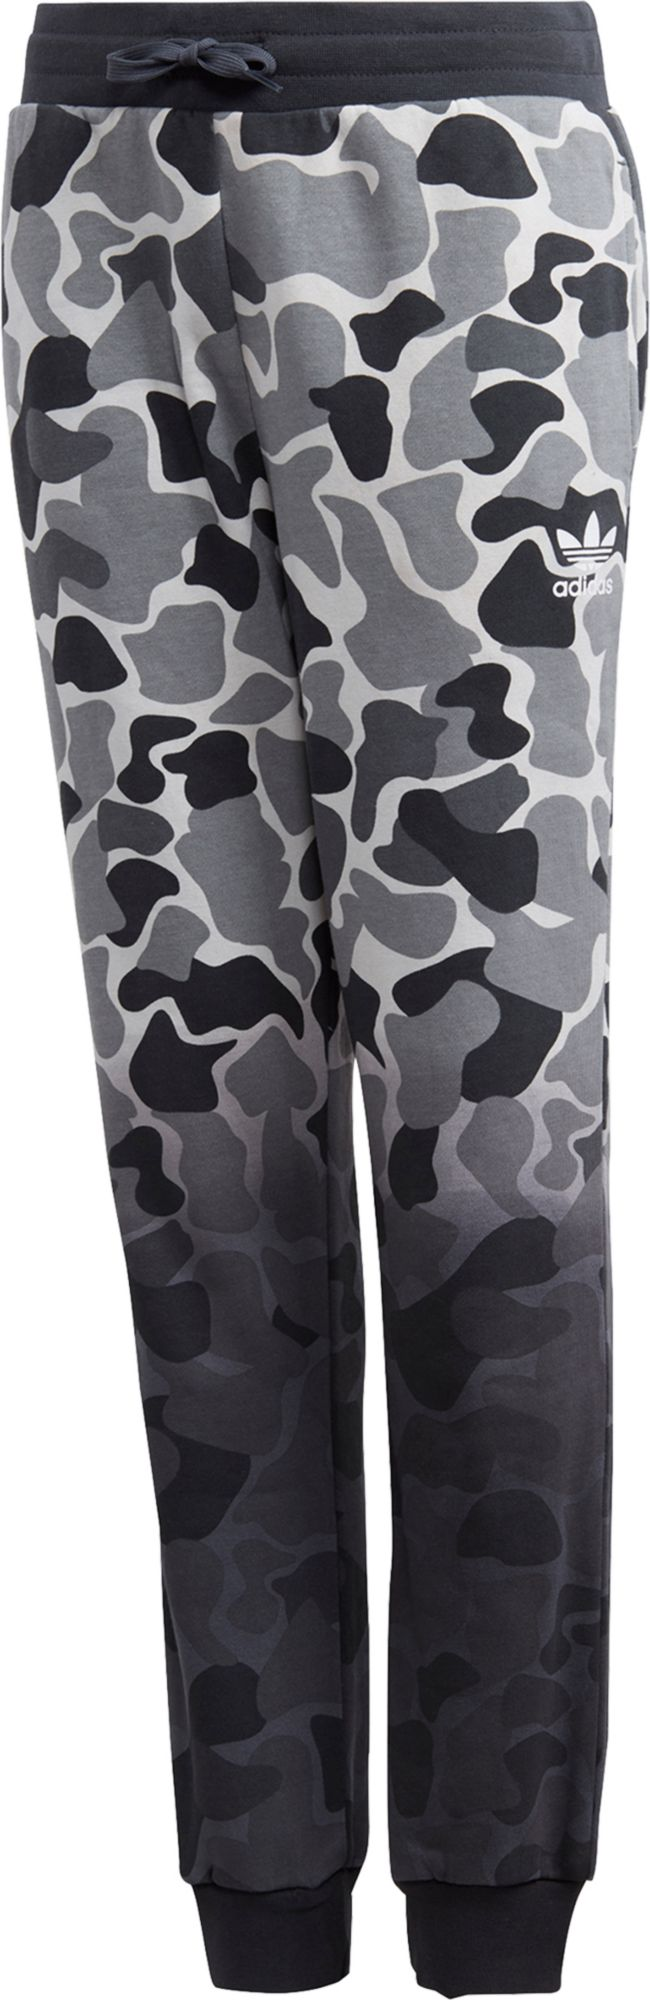 adidas Originals Boys' Camo Trefoil Pants, Size: XS, Green/Black thumbnail